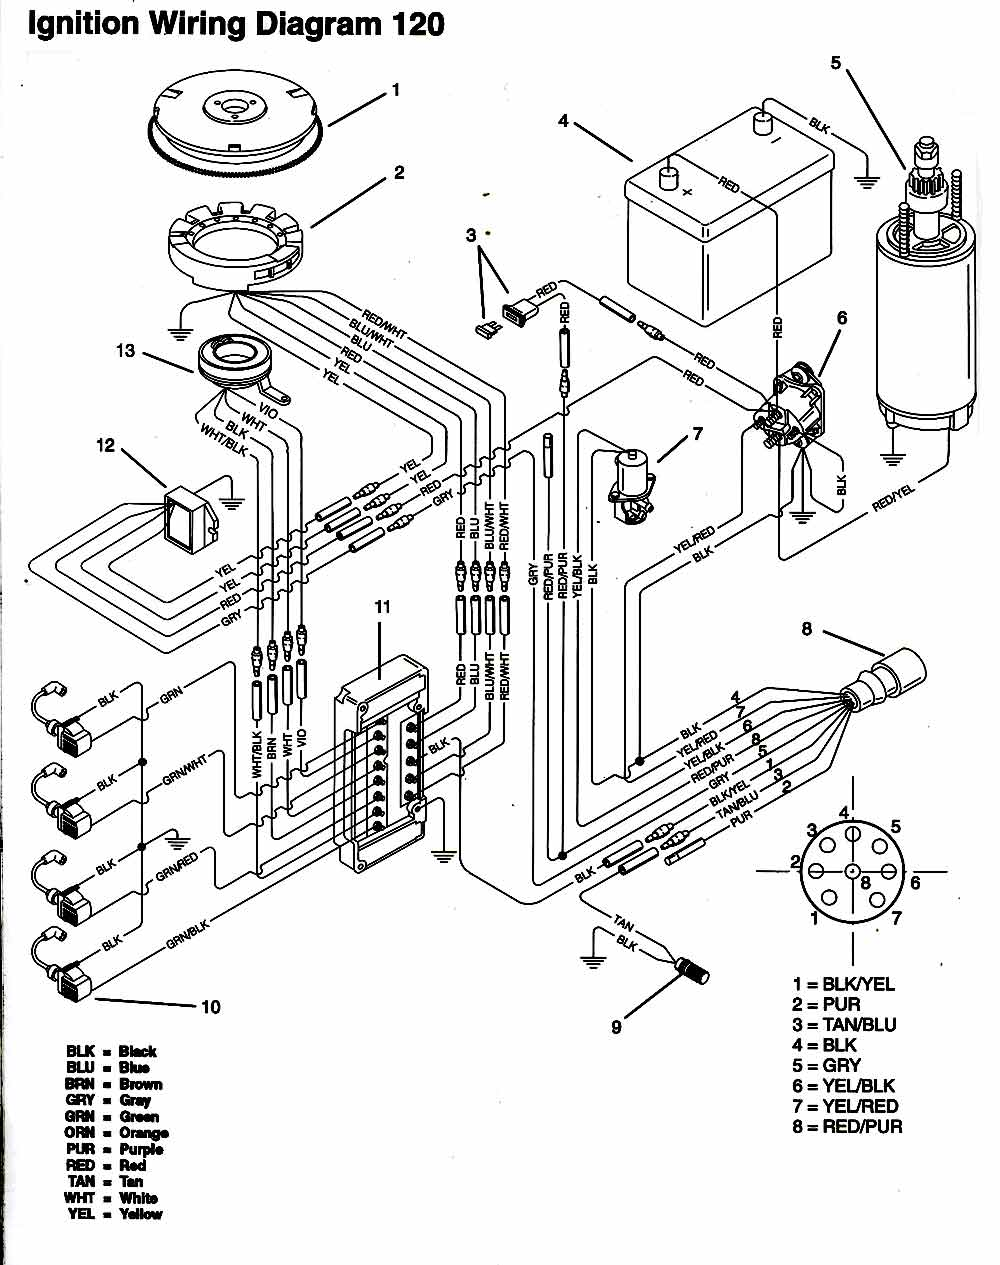 Fixforcewiring 120hp91b95 91 jeep cherokee wiring diagram at ww w freeautoresponder co